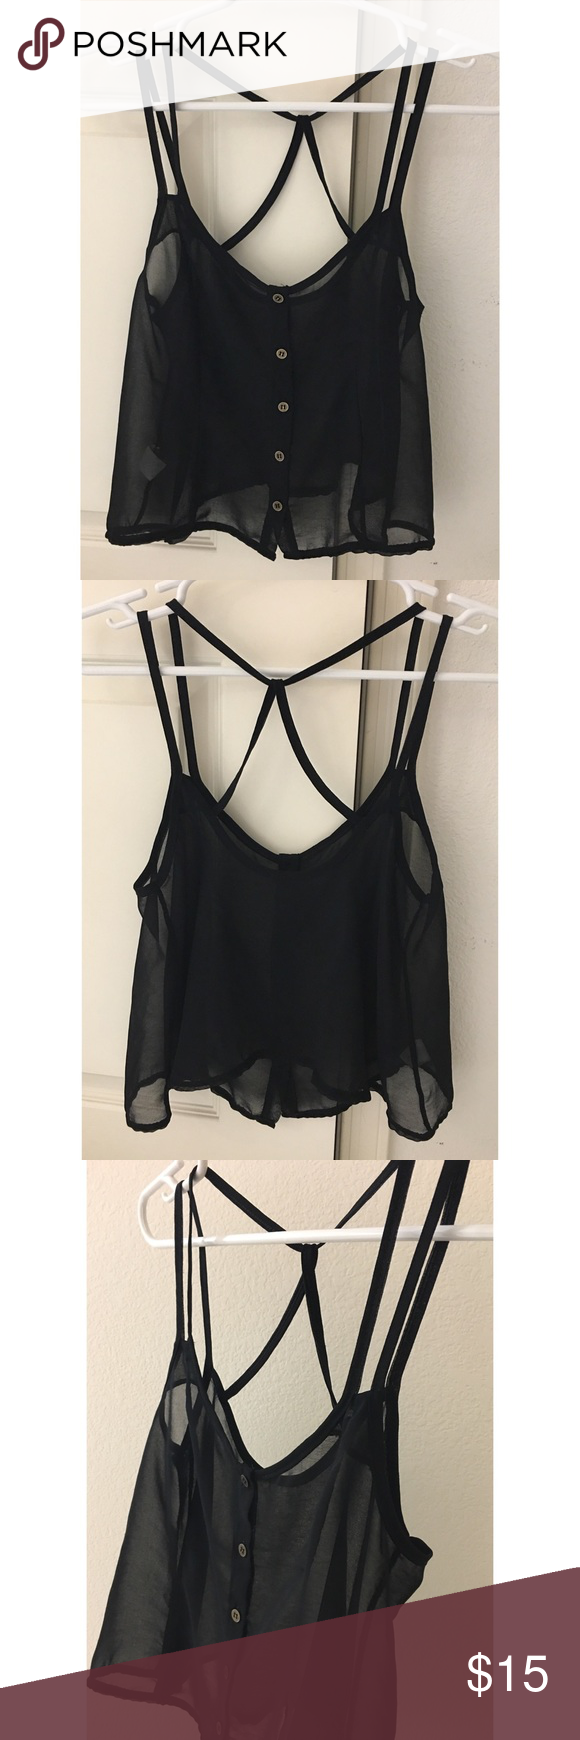 BRANDY MELVILLE Black Crop Top Strappy OS Small Crop top from Brandy Melville (brand tag missing, but purchased from a Brandy store and material tag shows Made in Italy as usual). I don't remember the size but it's likely OS or Small: armpit to armpit lying flat is around 15.25 inches, length down the middle (front side, from top hem next to the button to bottom hem, lying flat) is around 12 inches. . . OPEN TO REASONABLE OFFERS, cleaning out my closet and everything needs to go ASAP! I sell…